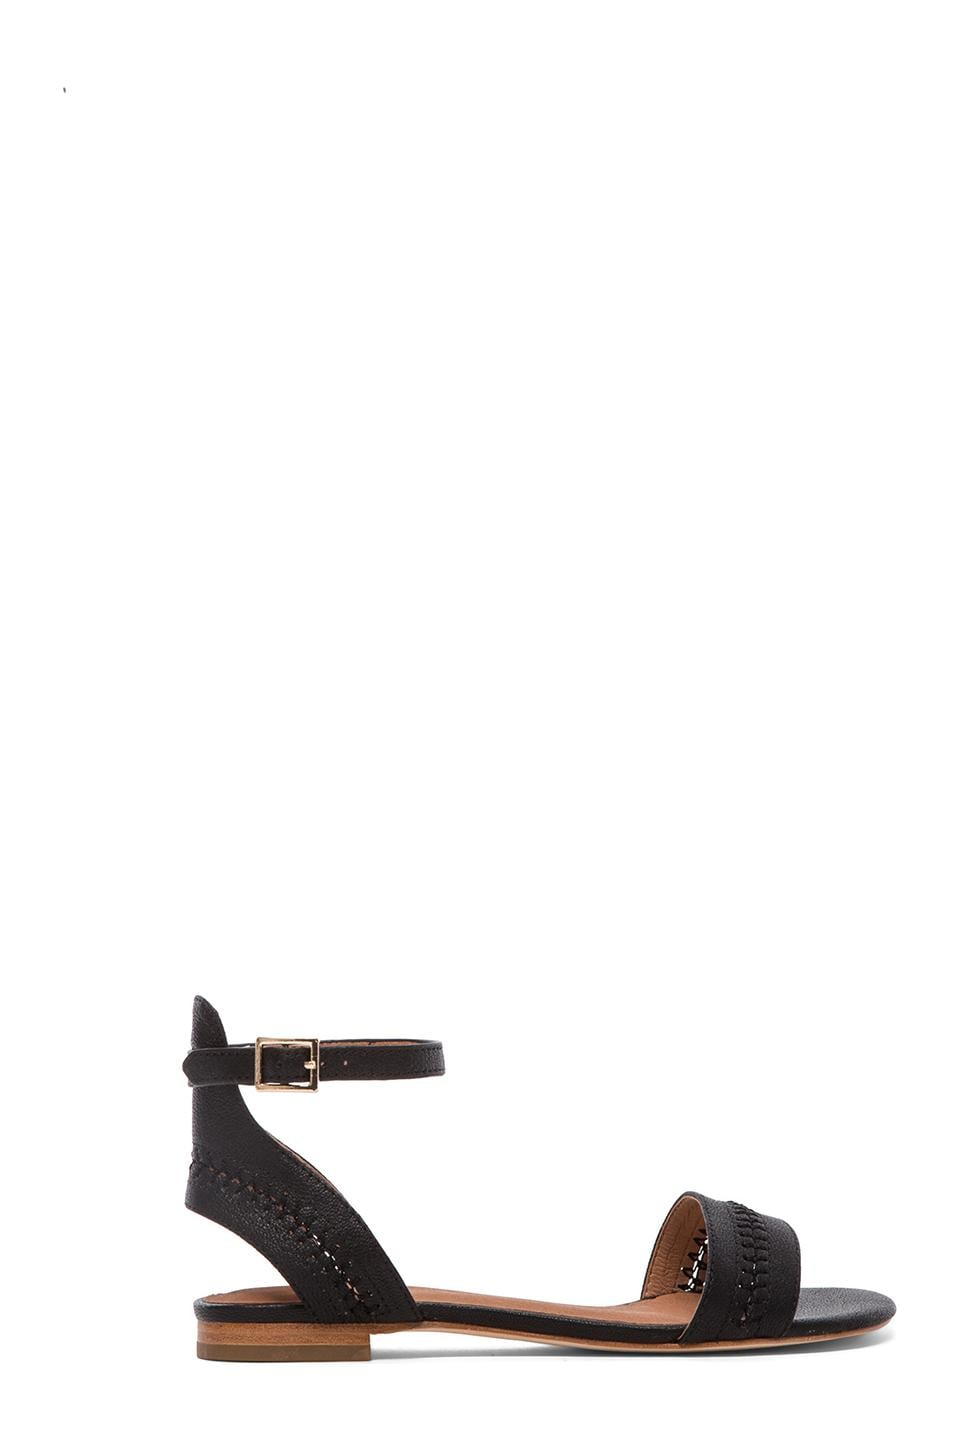 Joie Lorenzo Sandal in Black